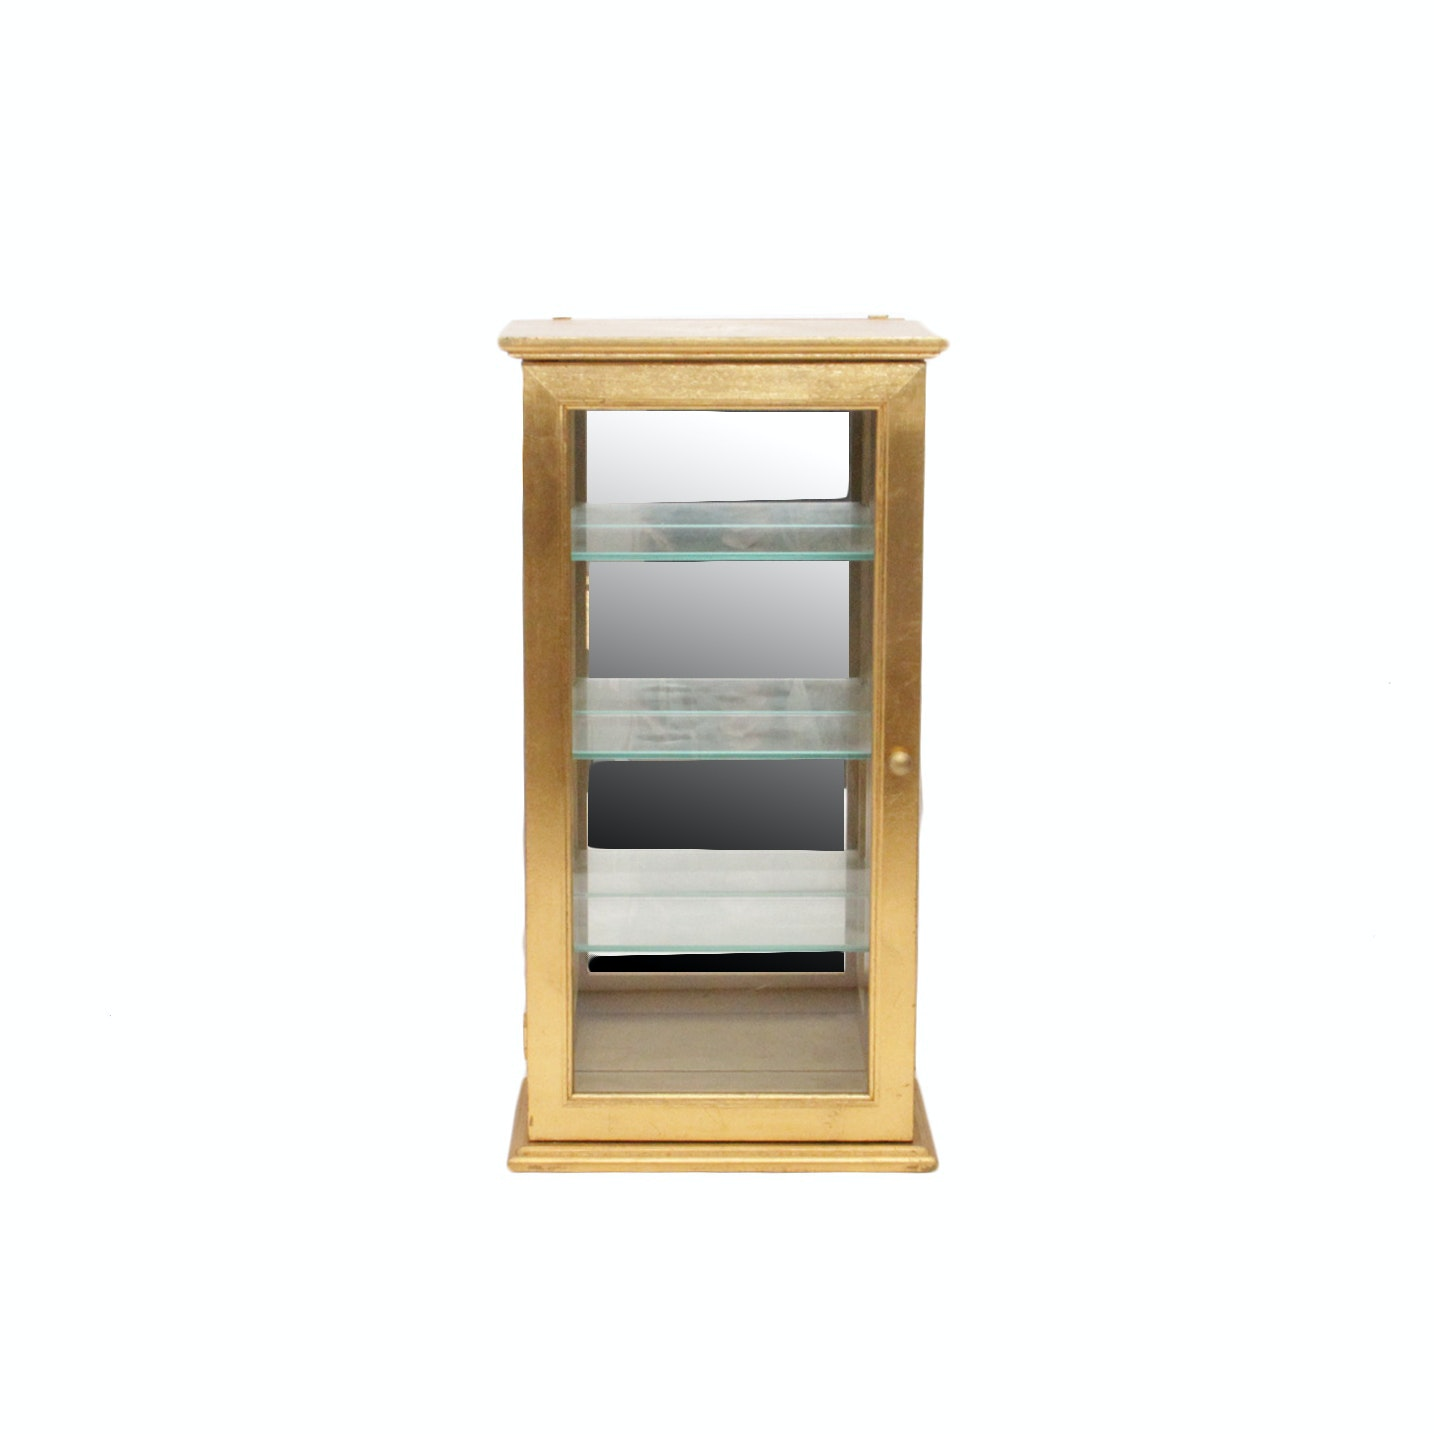 Gold Tone Painted Wooden Display Cabinet